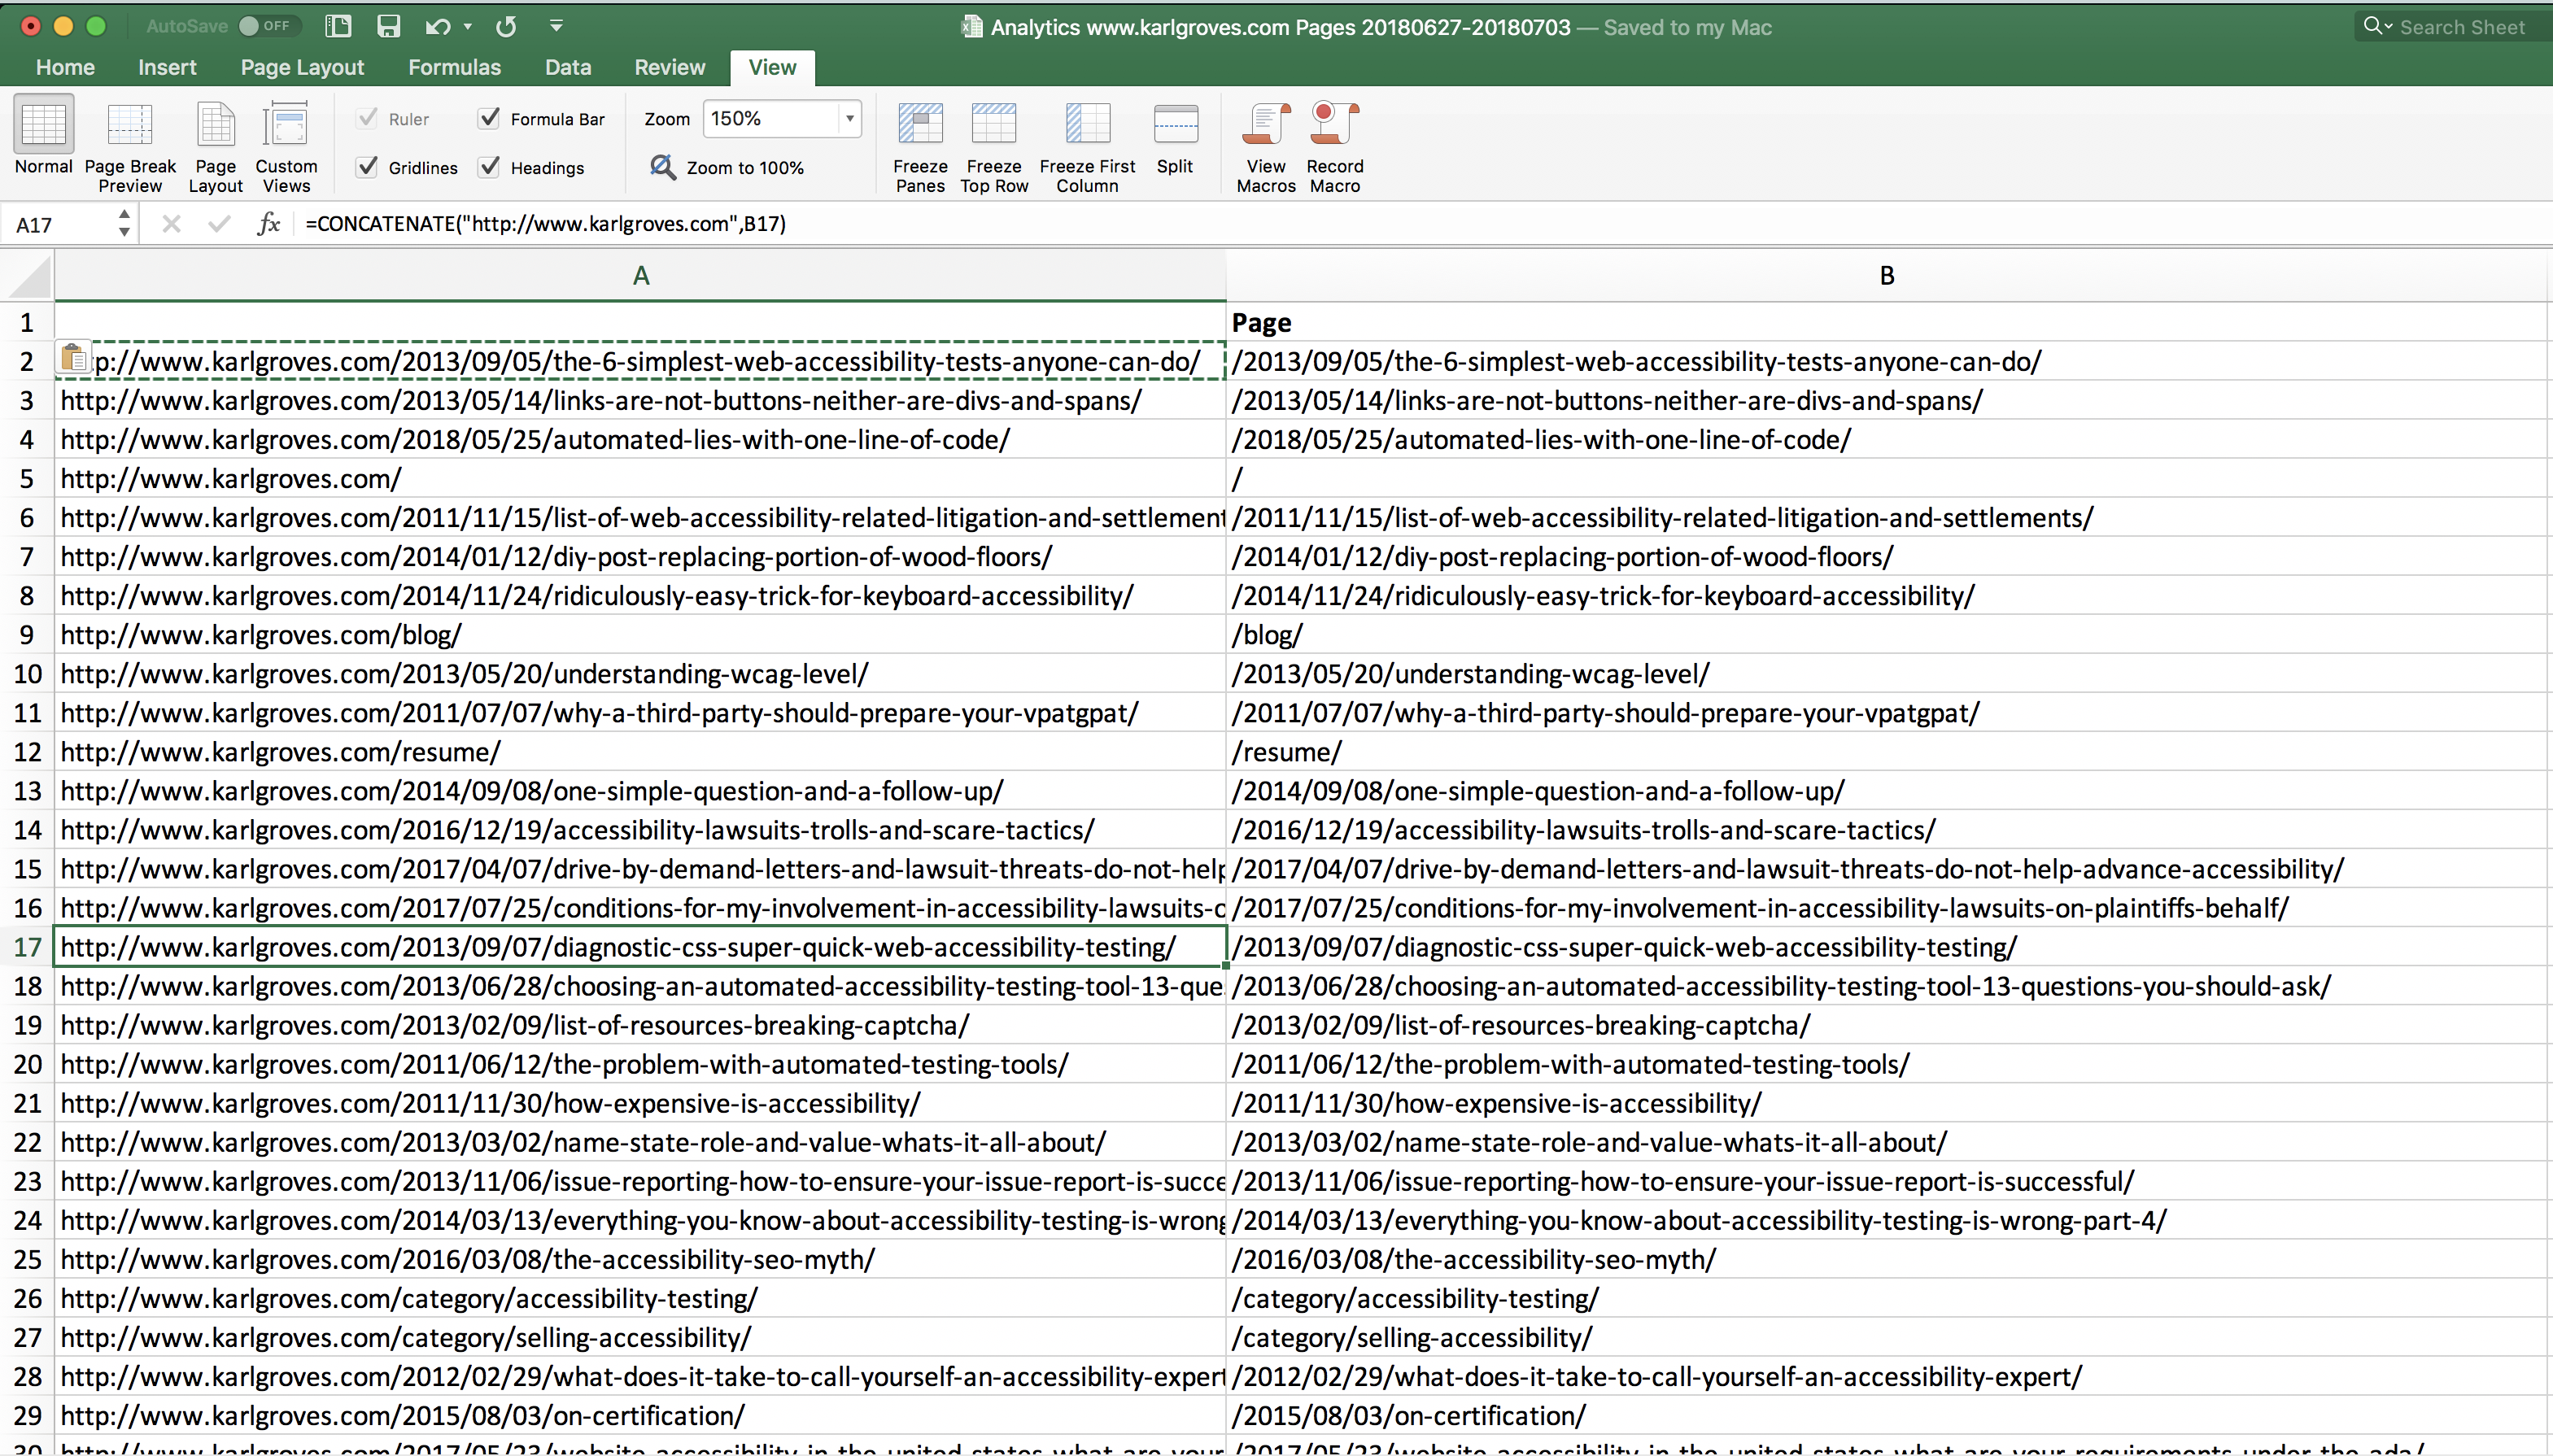 Screenshot showing the copy-paste in the new column